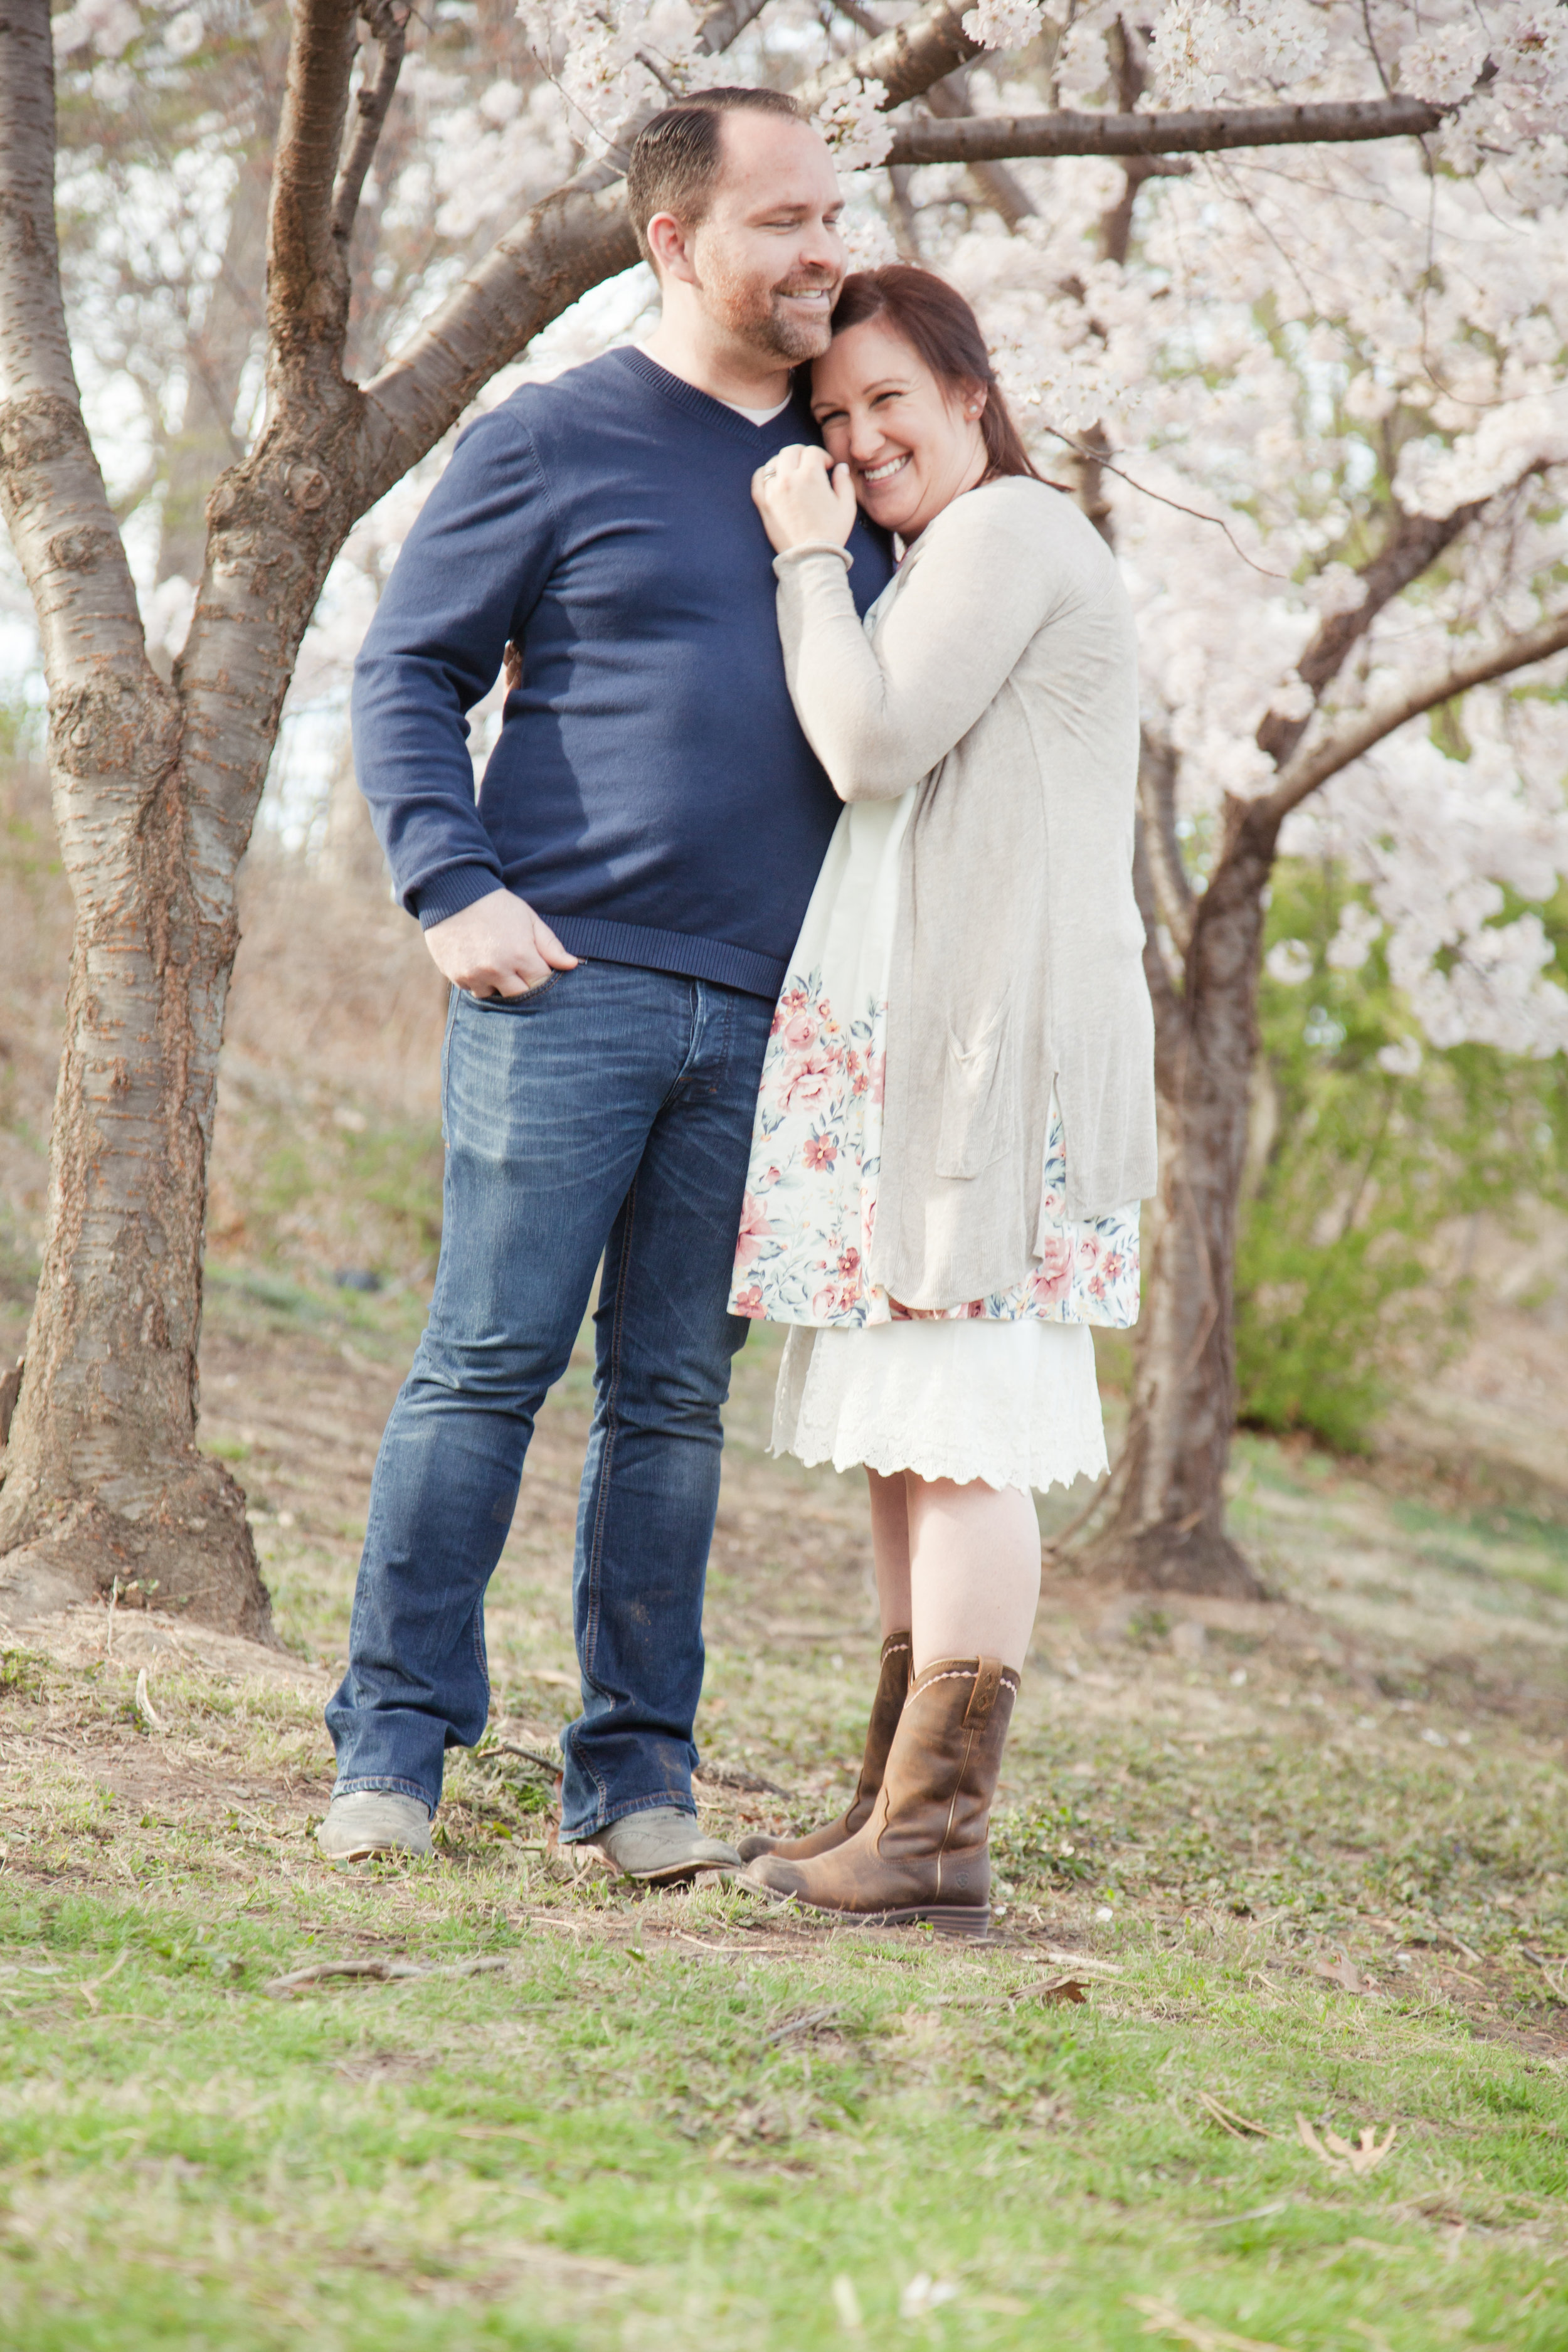 HALLEY ANN PHOTOGRAPHY - PREMIER LIFESTYLE PHOTOGRAPHER - BERGEN COUNTY, NJ